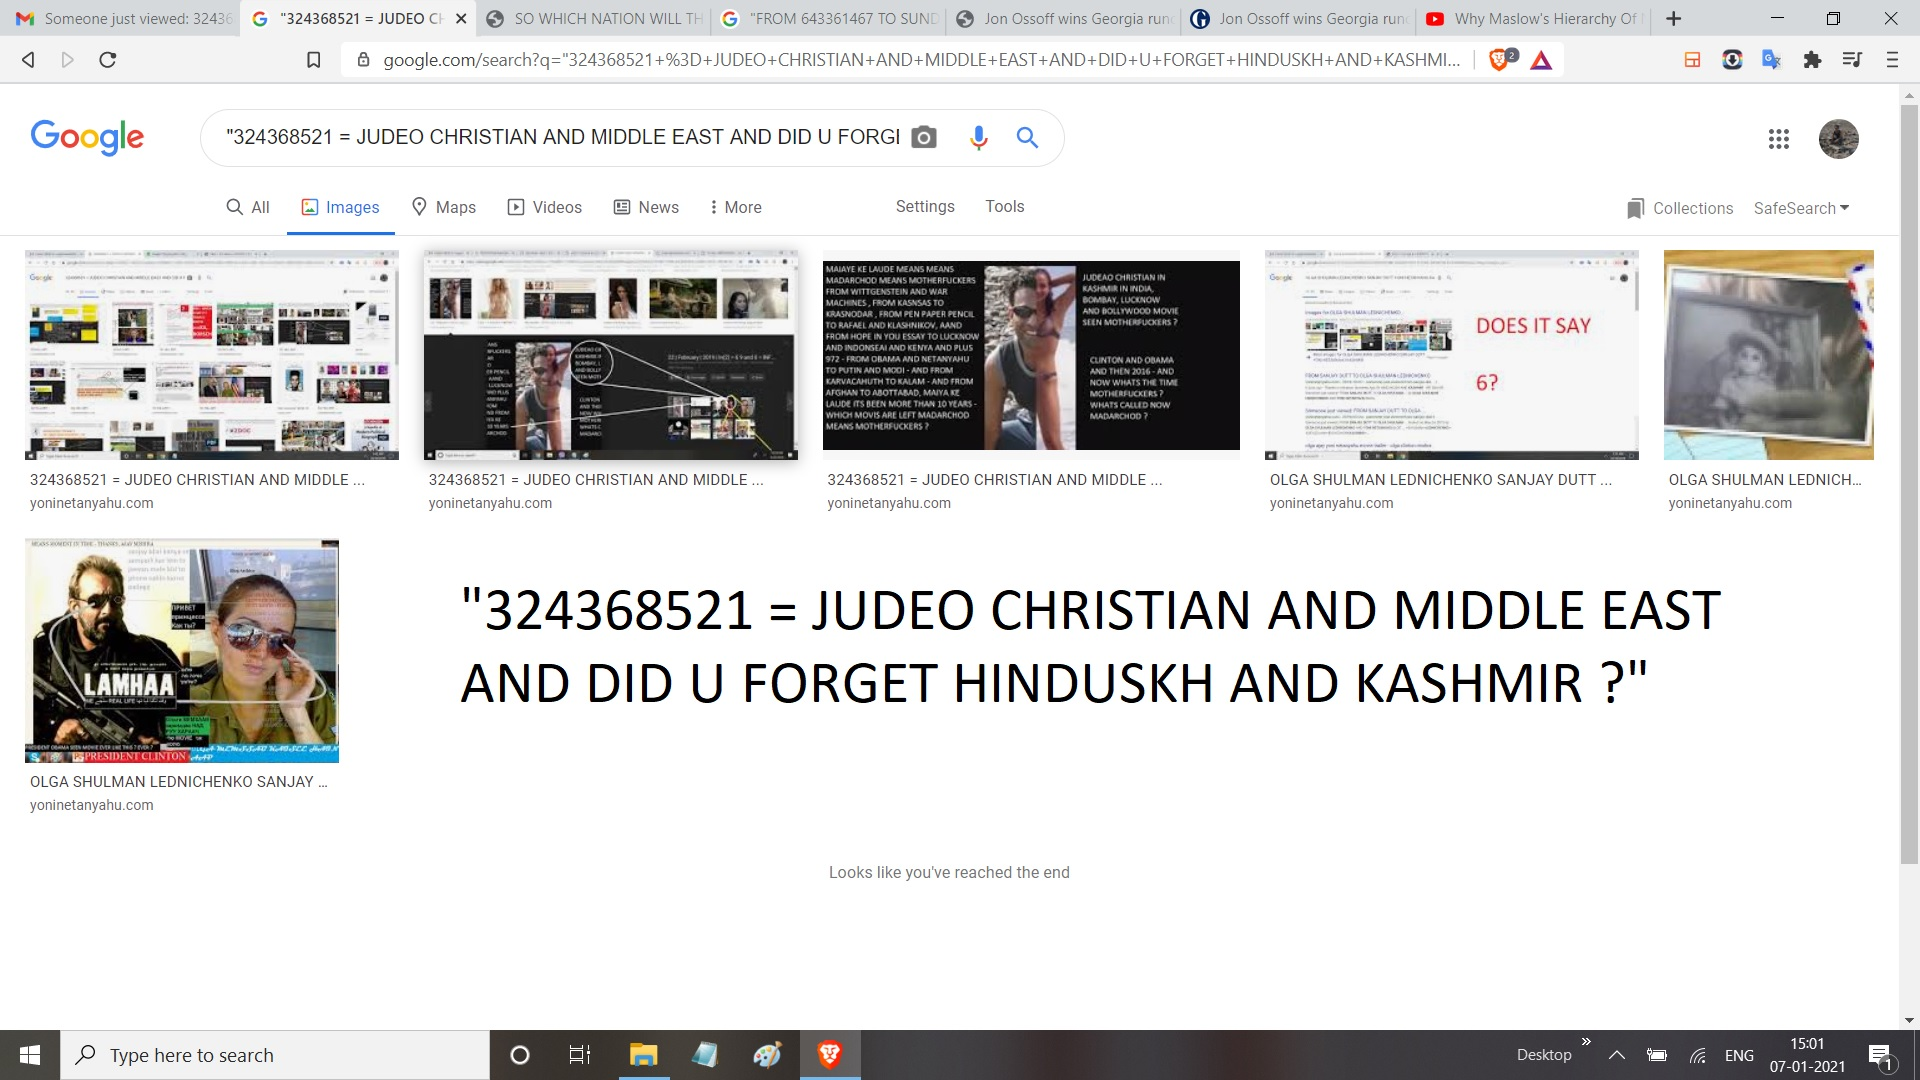 324368521 = JUDEO CHRISTIAN AND MIDDLE EAST AND DID U FORGET HINDUSKH AND KASHMIR